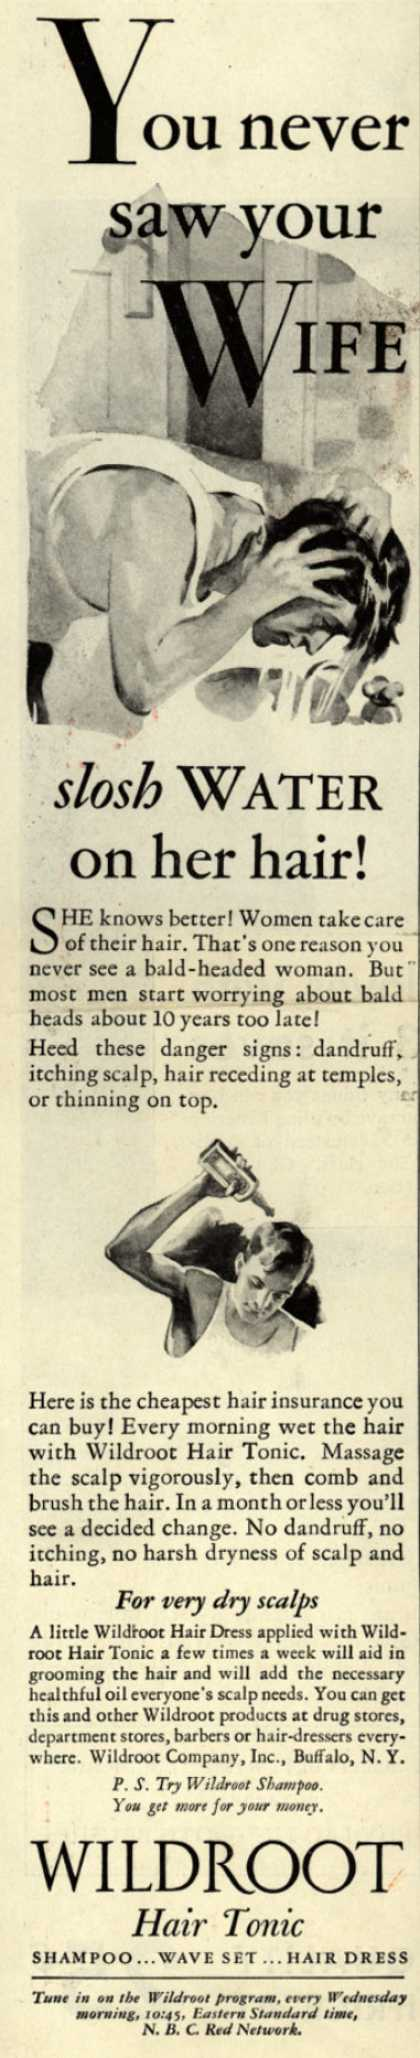 Wildroot Company's Wildroot Hair Tonic – You never saw your Wife slosh Water on her hair (1931)